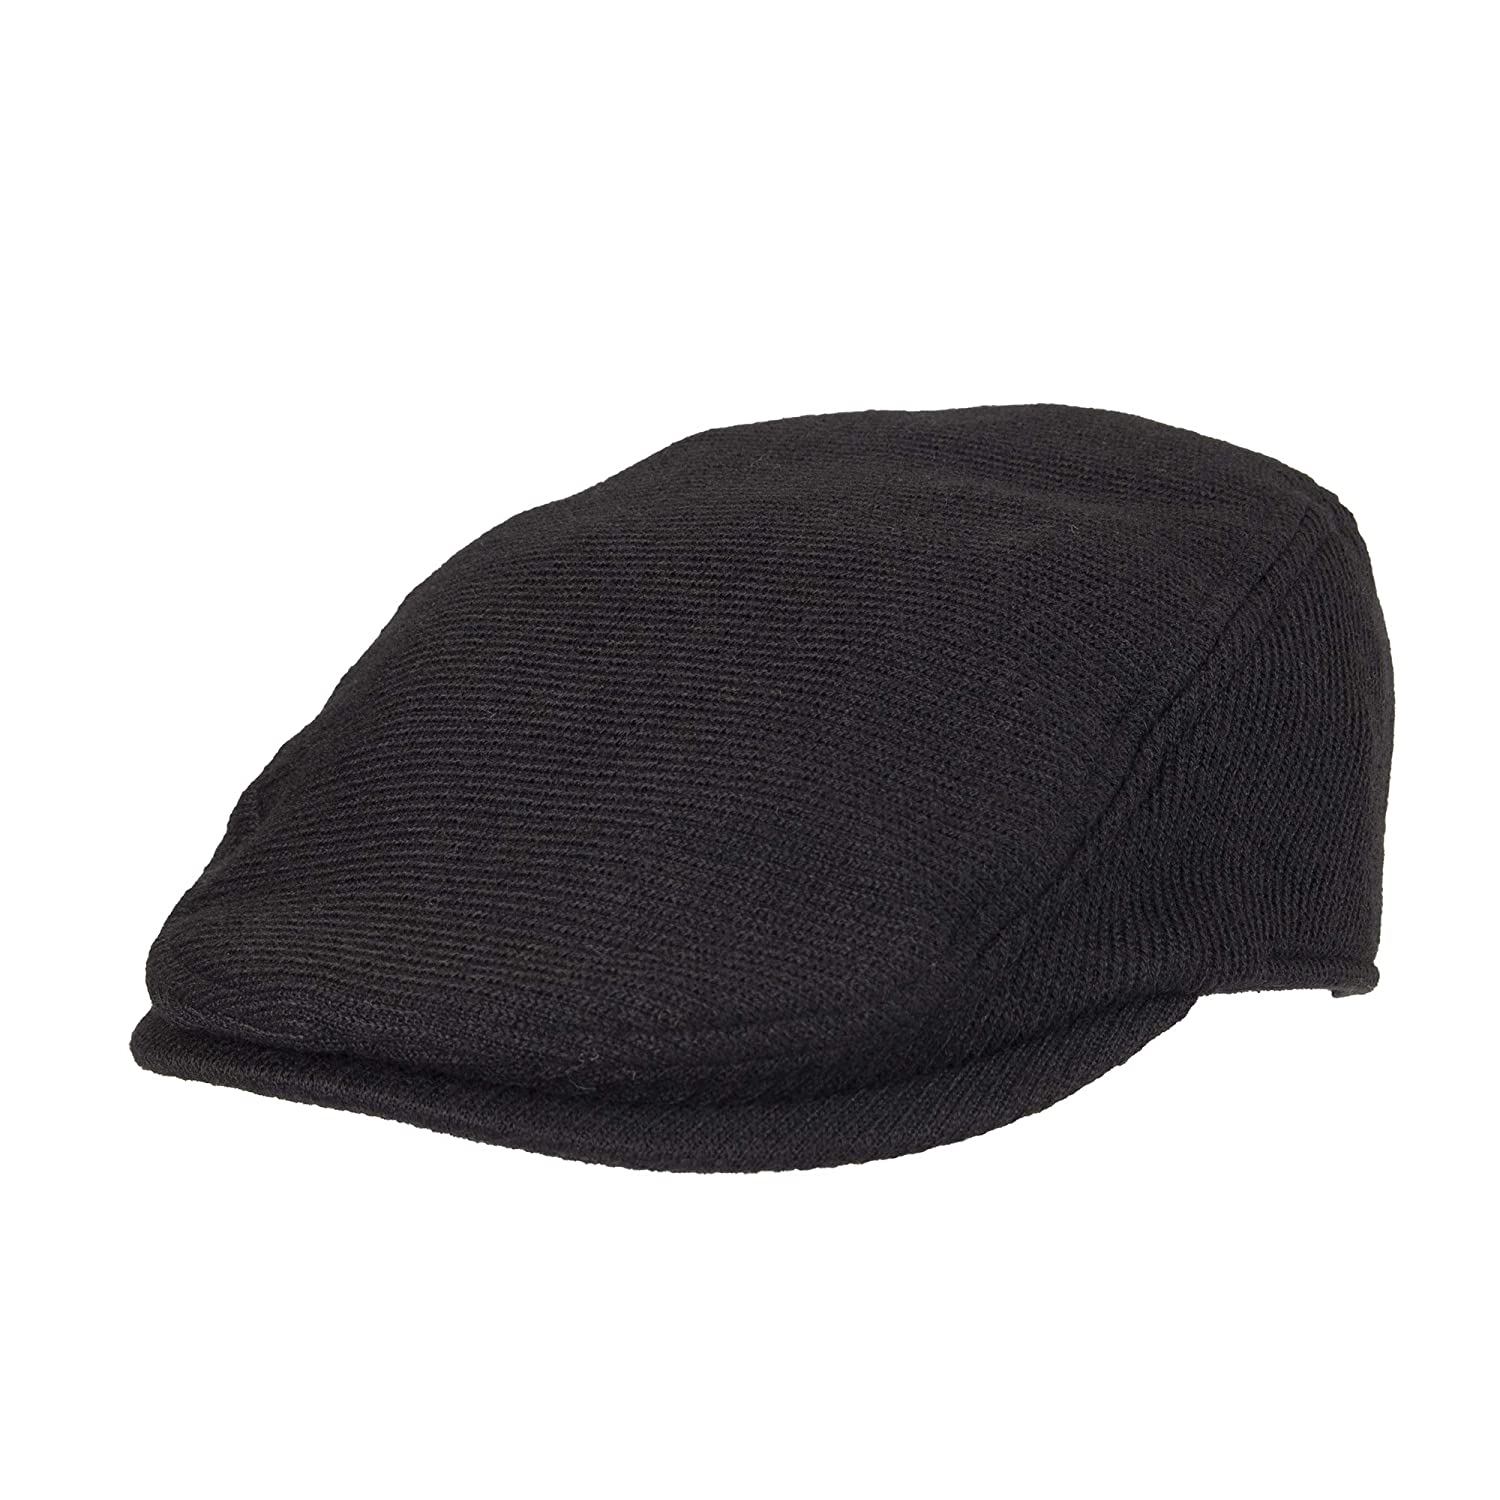 3036b1409dbad Dockers Mens Standard Ivy Newsboy Hat  Amazon.ca  Clothing   Accessories